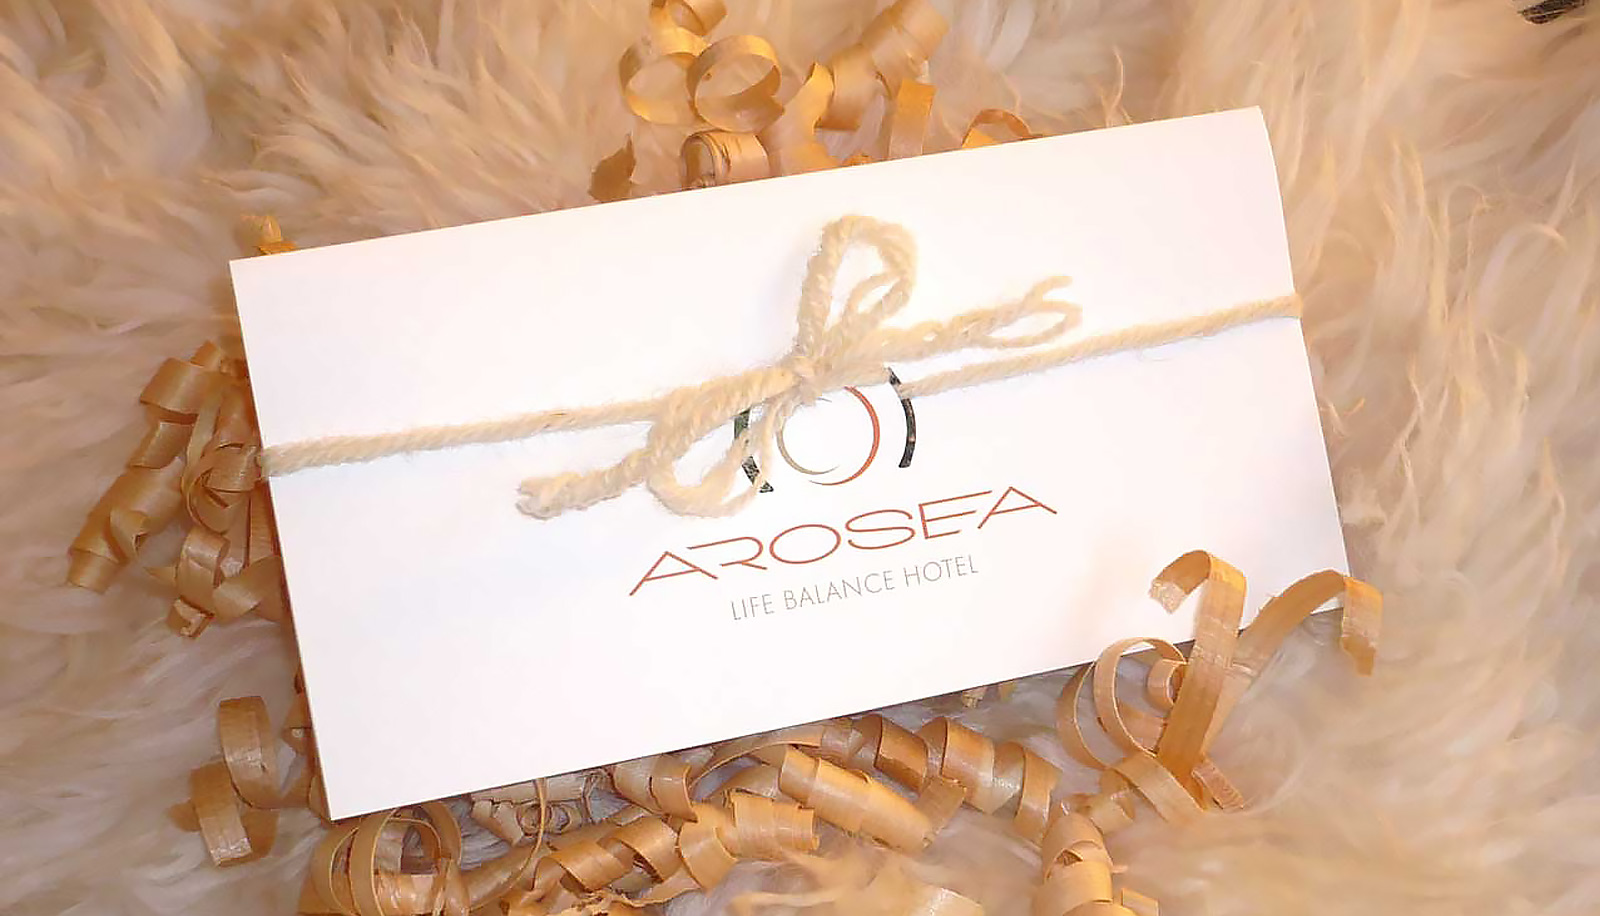 Voucher of Arosea Hotel in Ultental-Val d'Ultimo